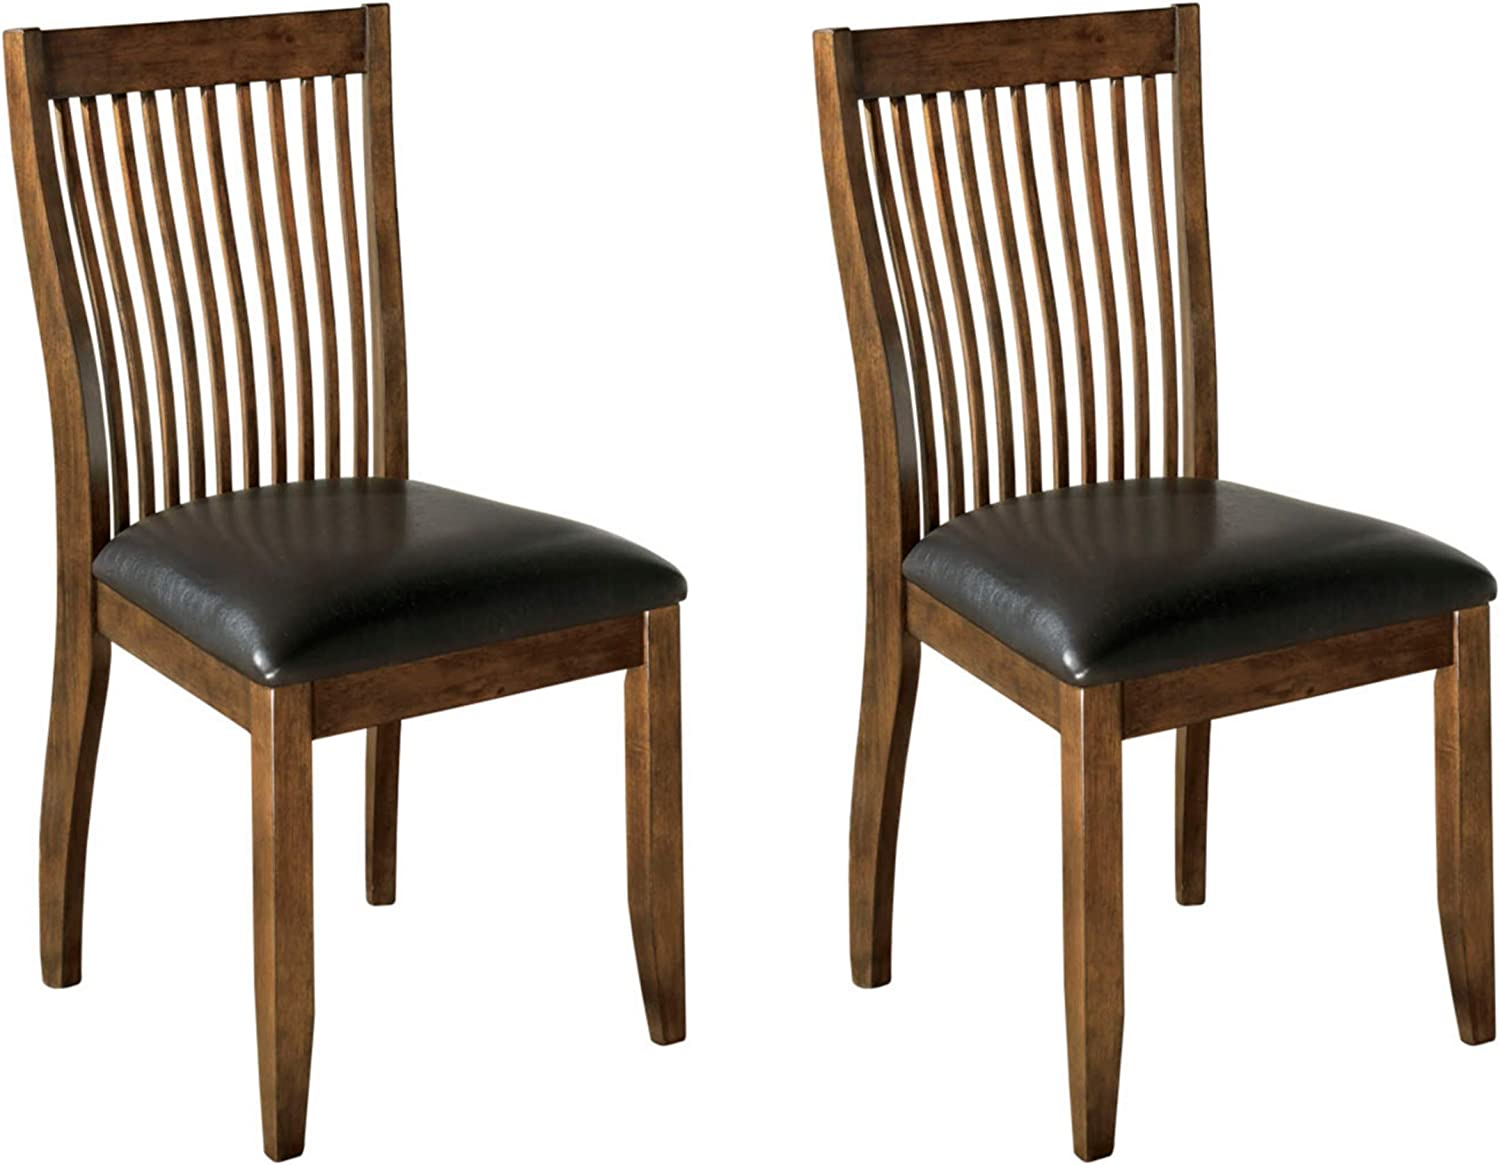 Signature Design By Ashley Centiar Dining Chair Set Of 2 Black And Brown Chairs